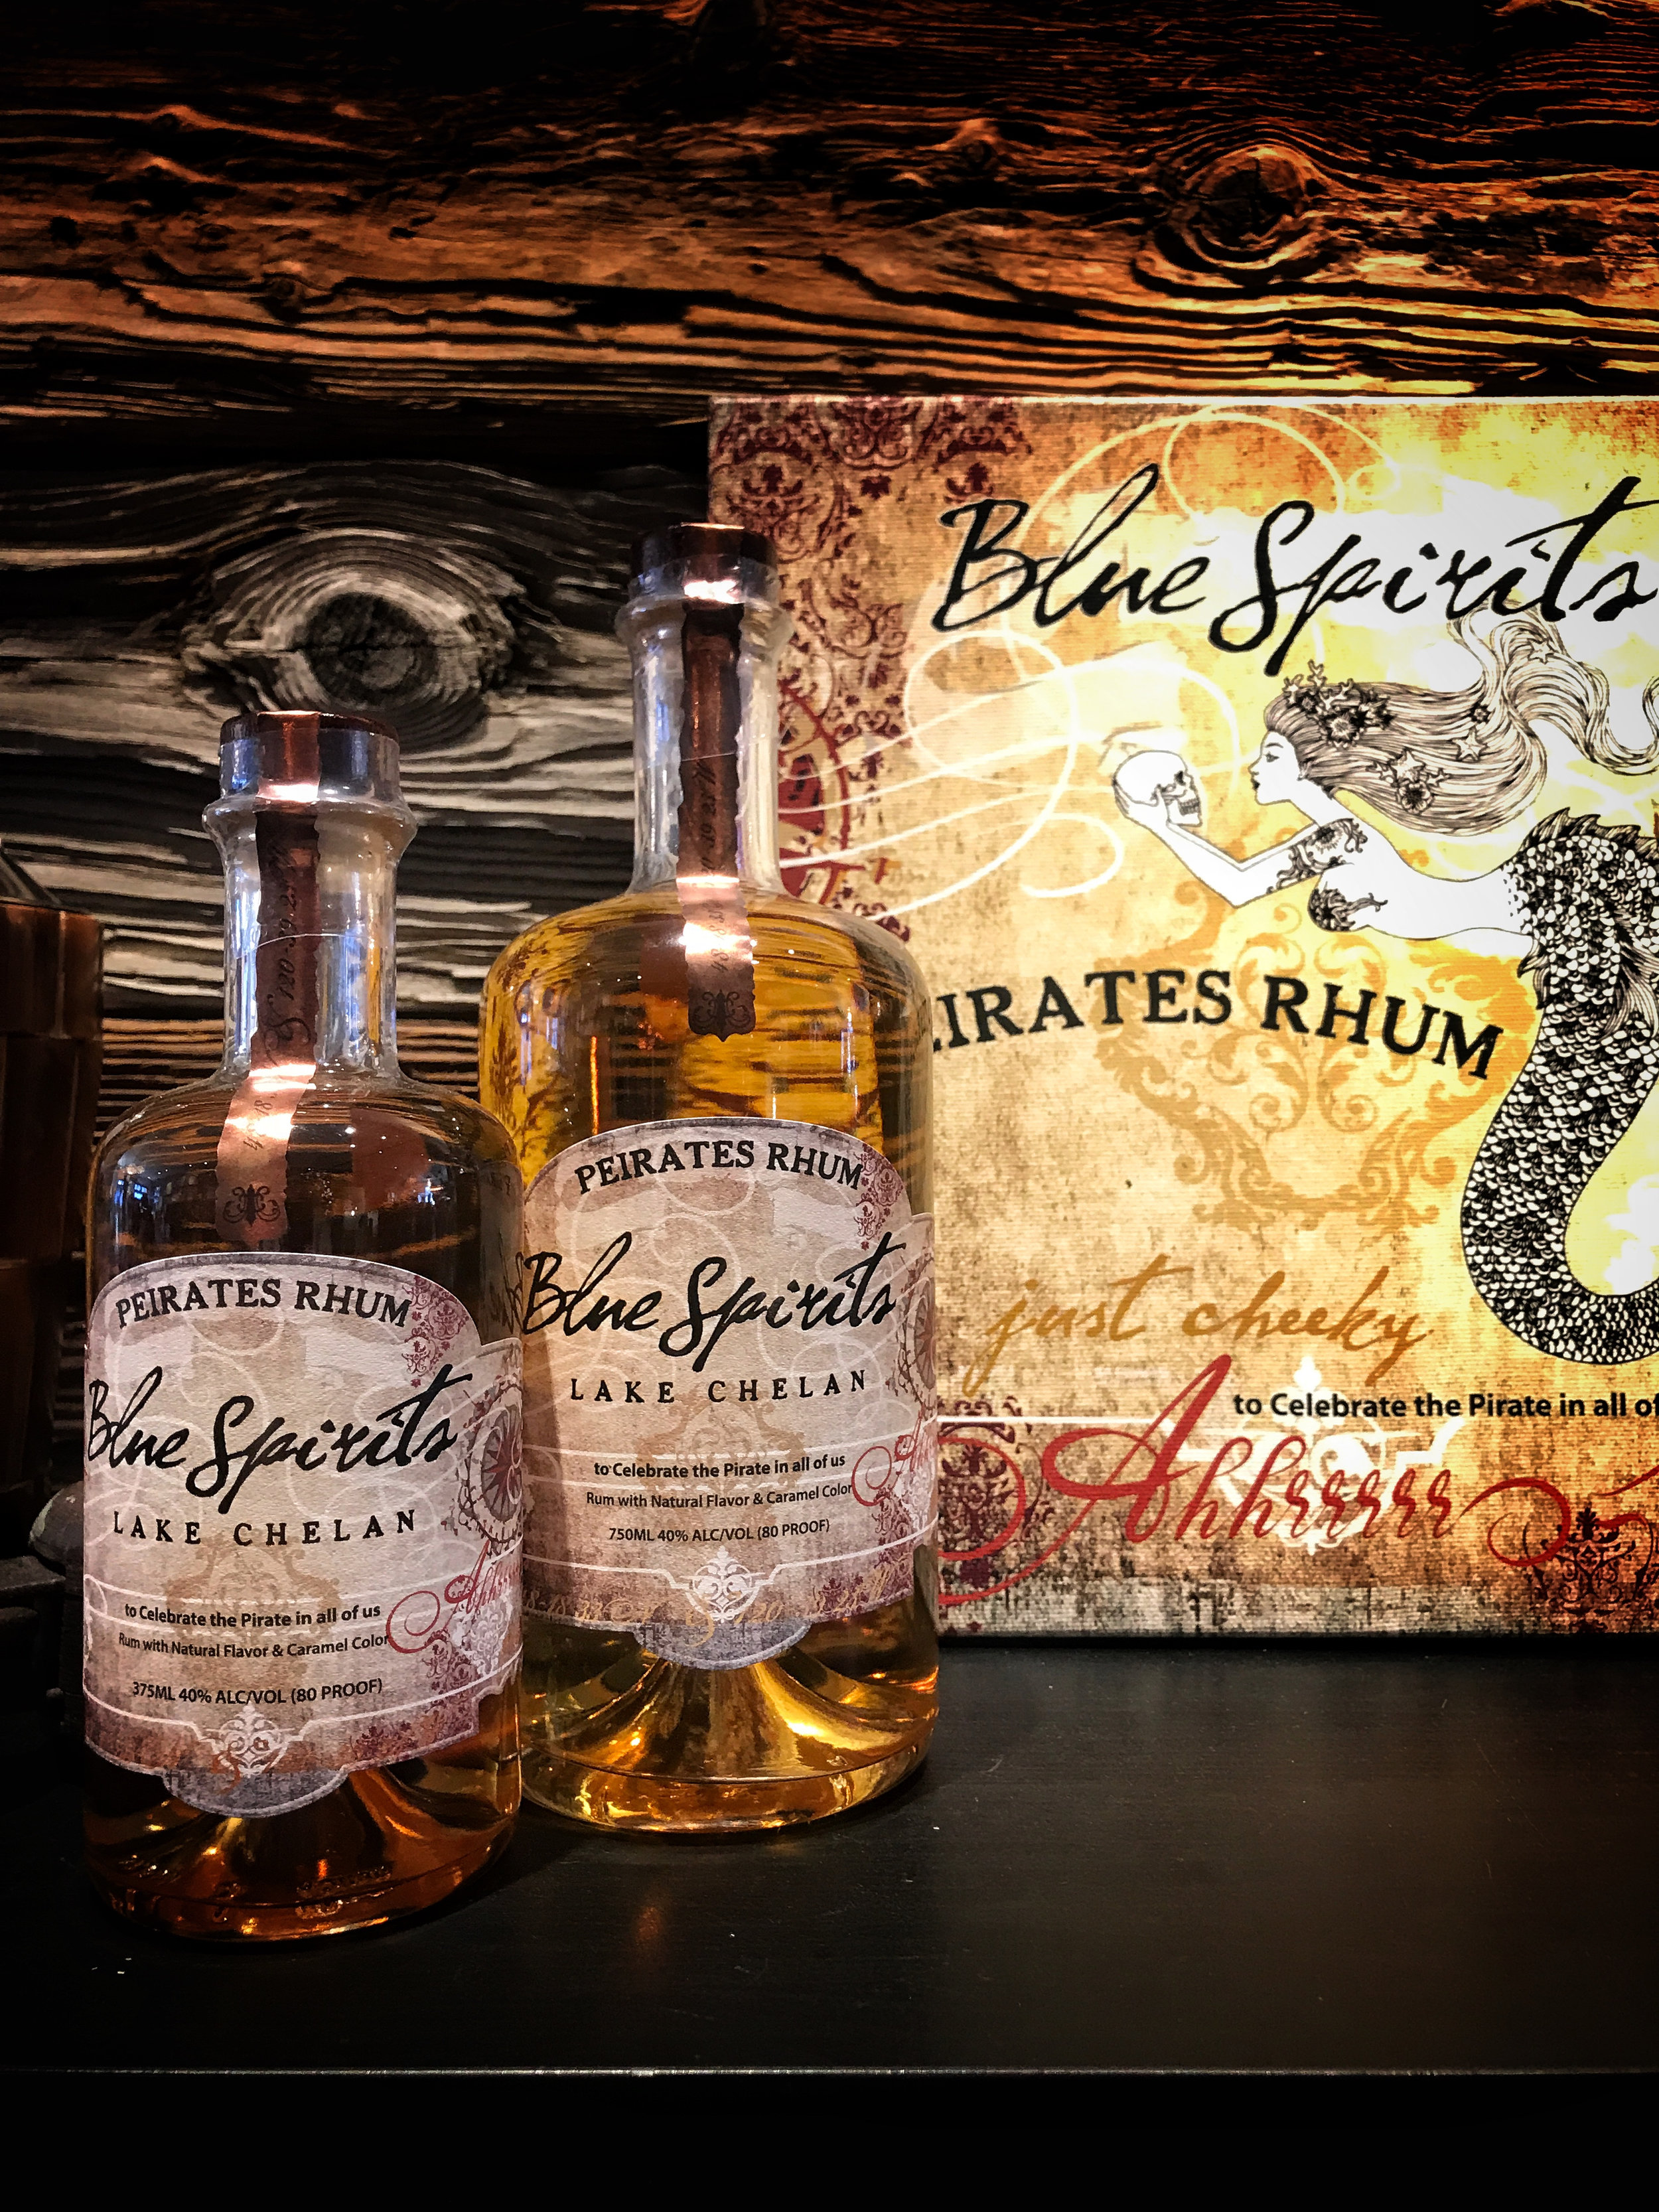 The bottle artwork for Blue Spirits is stunning. Don't miss a trip to their tasting room.